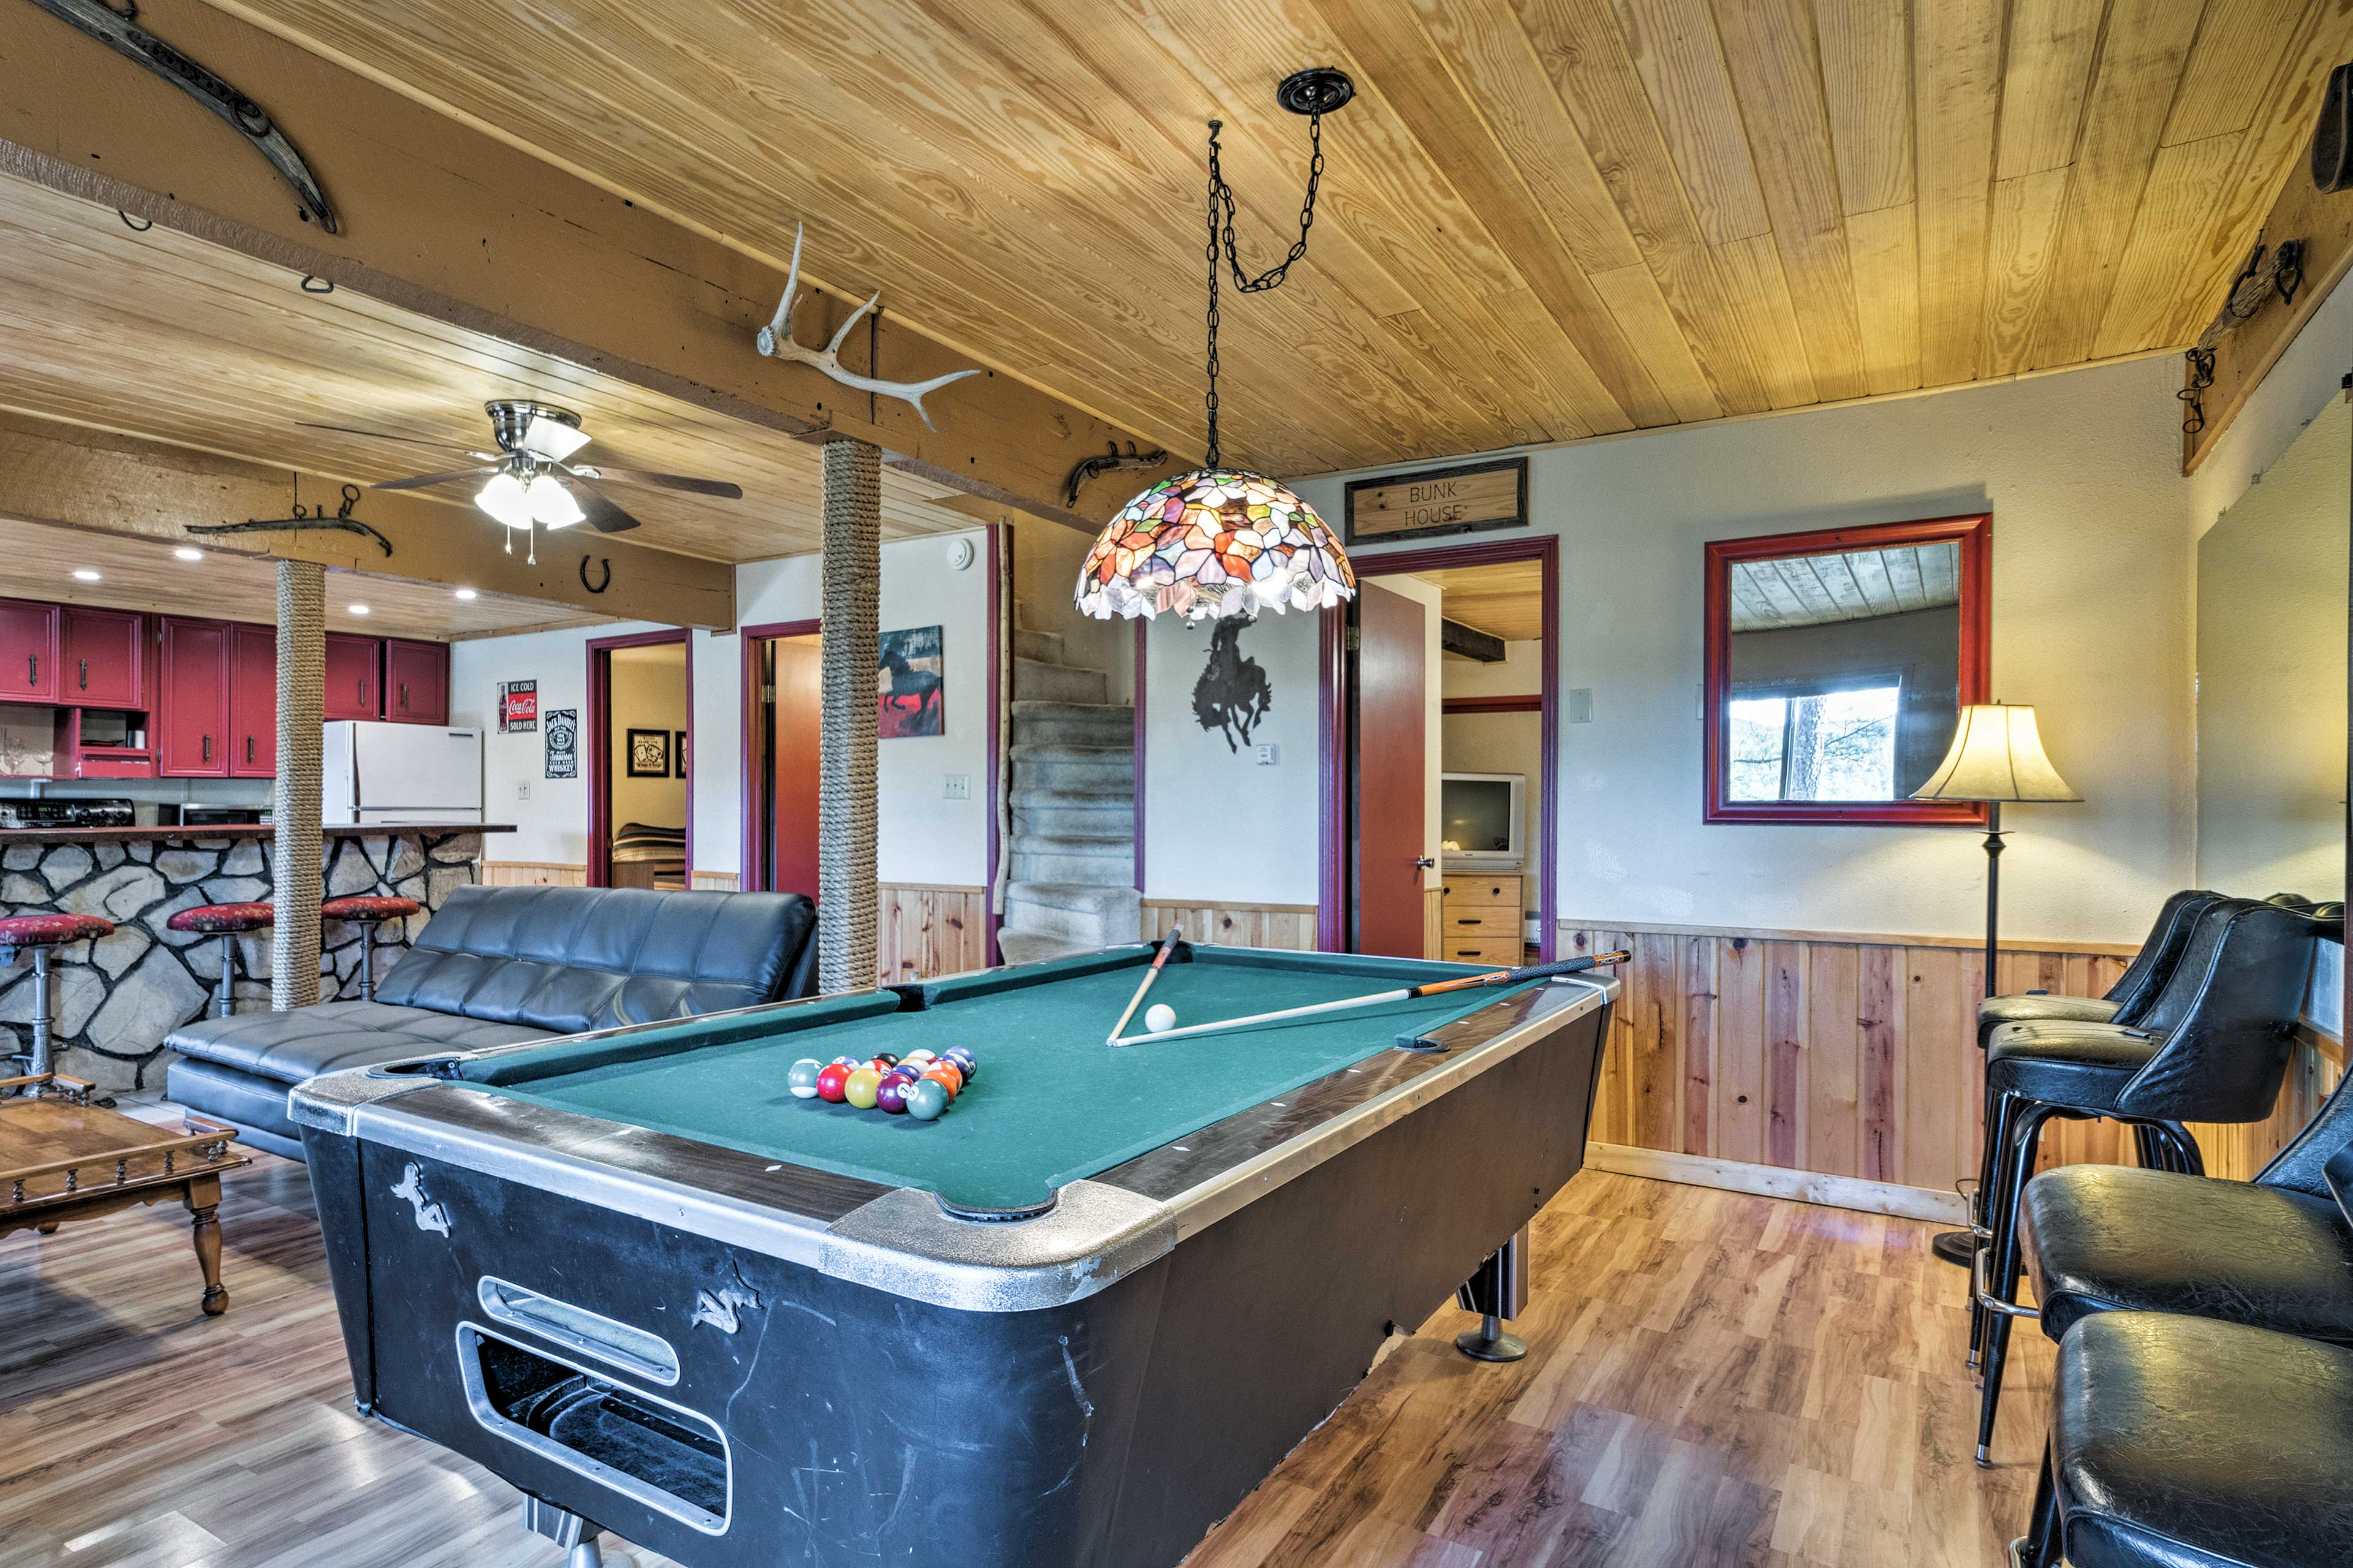 Minutes from Ruidoso Downs, this home can't be beat!